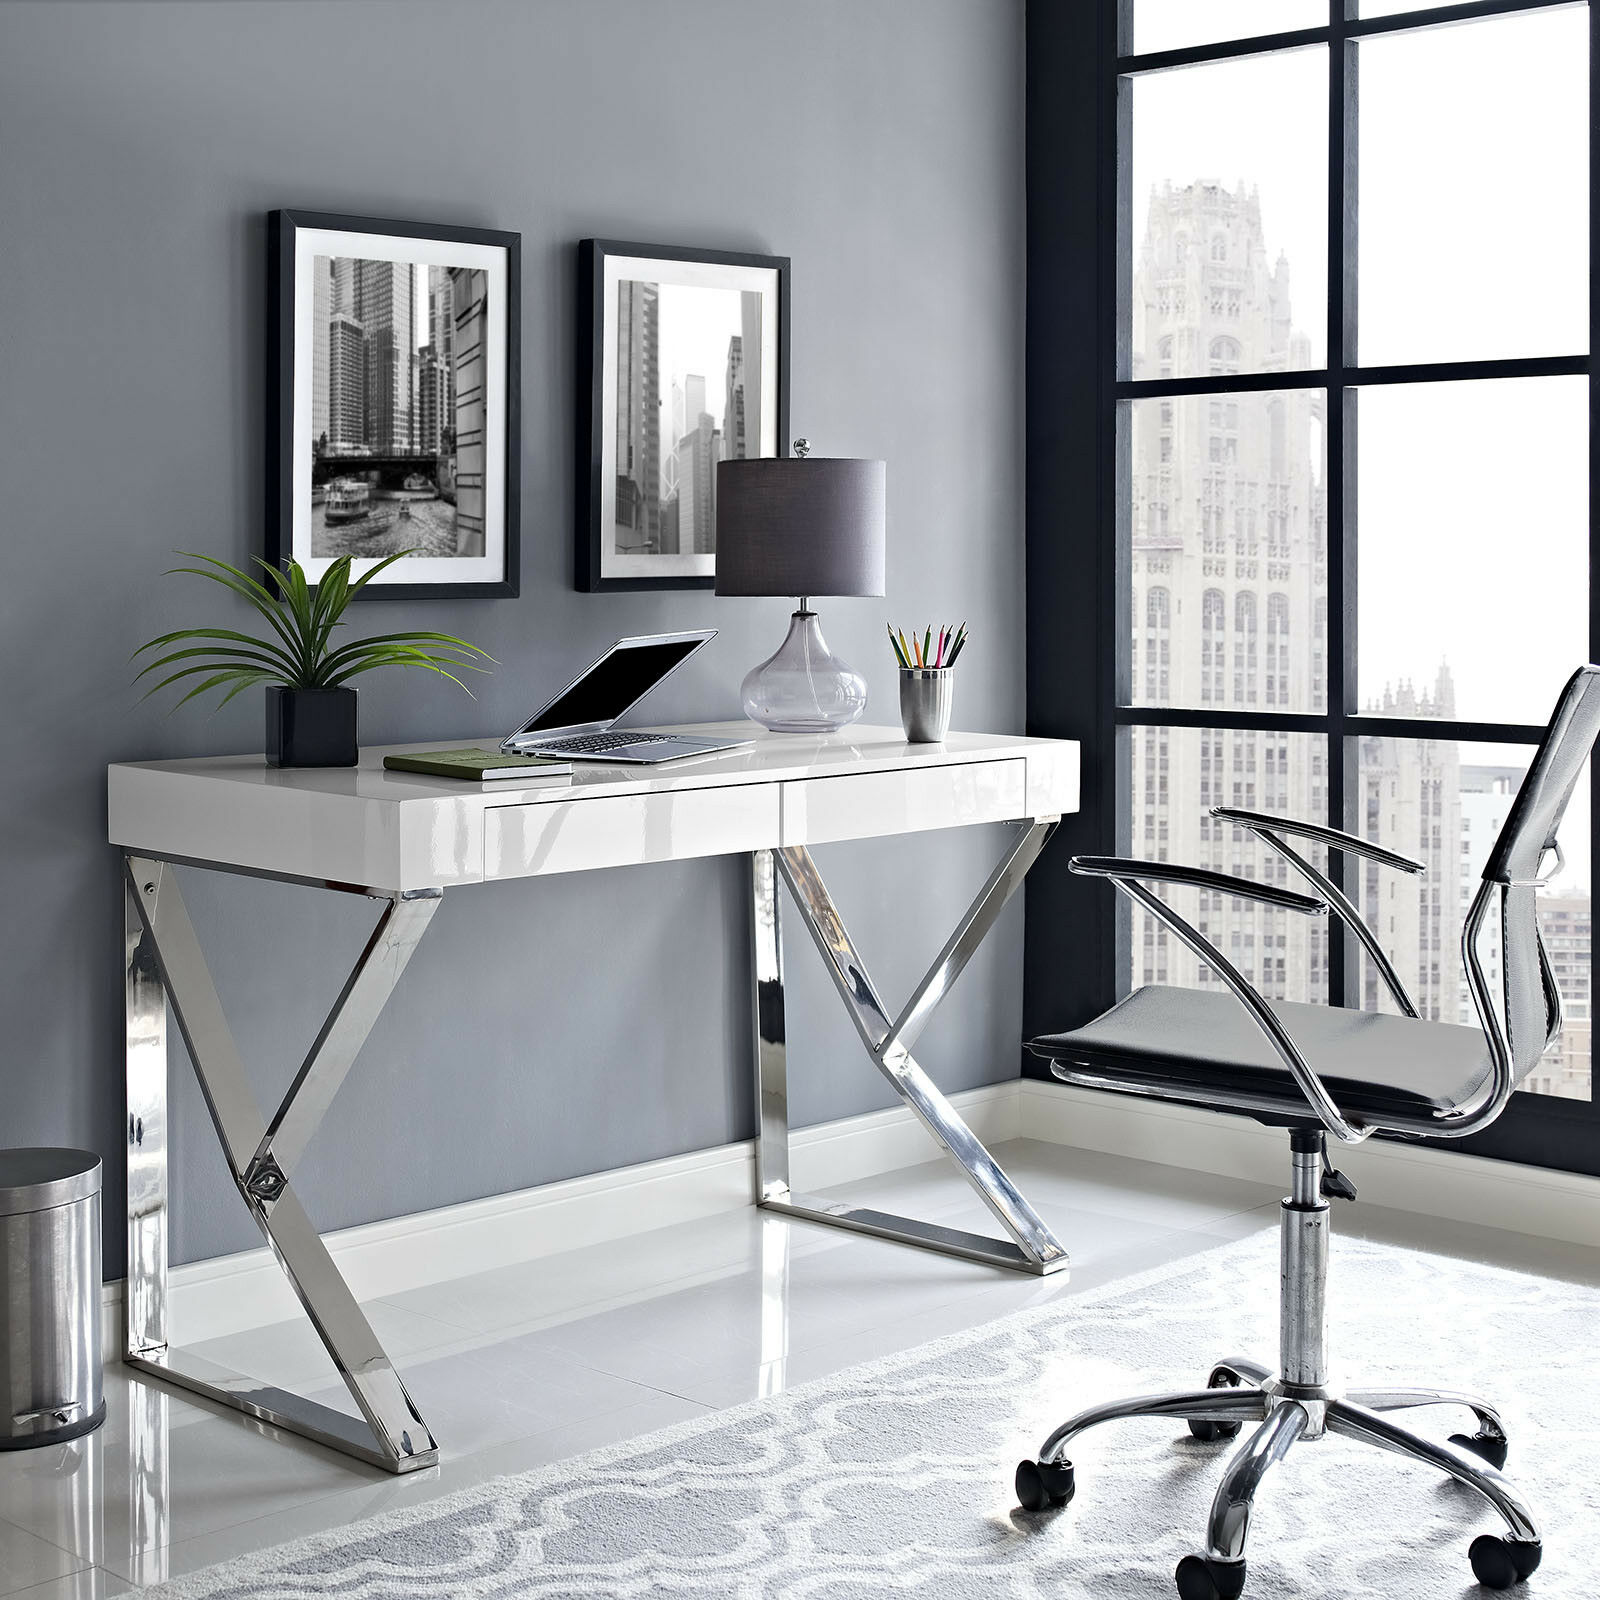 Details About Contemporary Modern Home Office Computer Desk With Metallic Legs In White